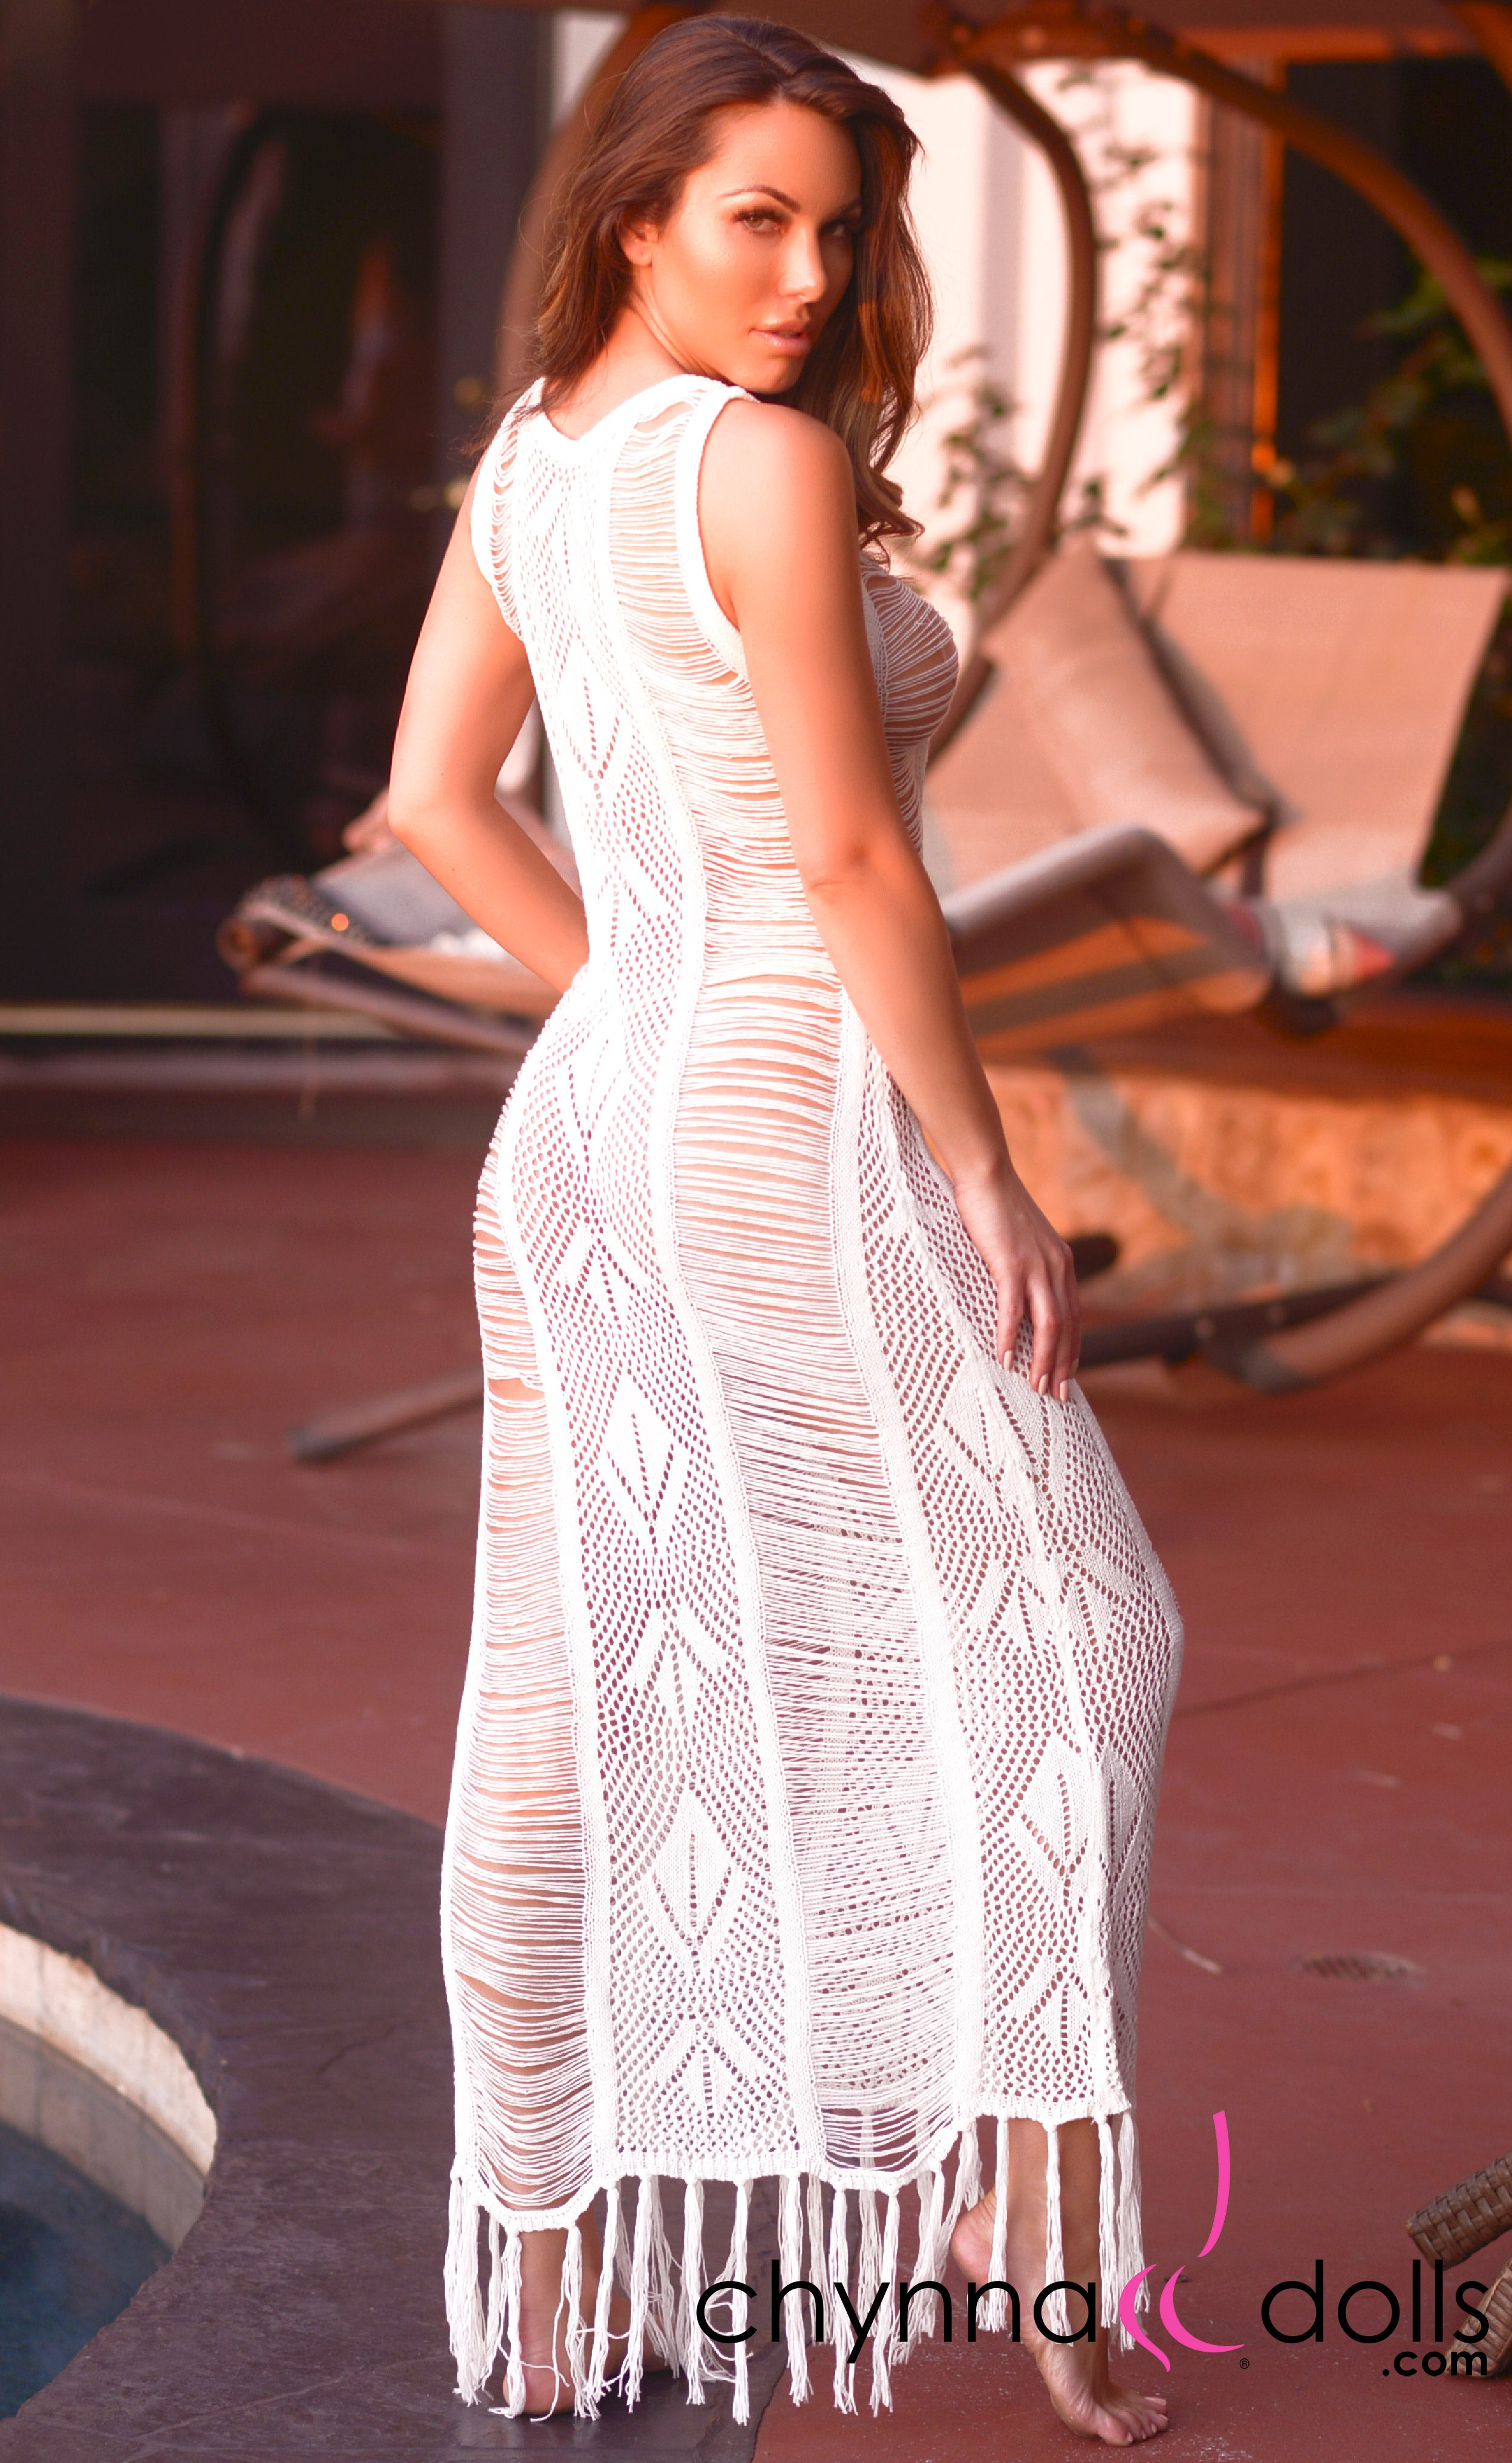 Serenity: Crochet Maxi Dress Cover-up in Off White - Chynna Dolls Swimwear